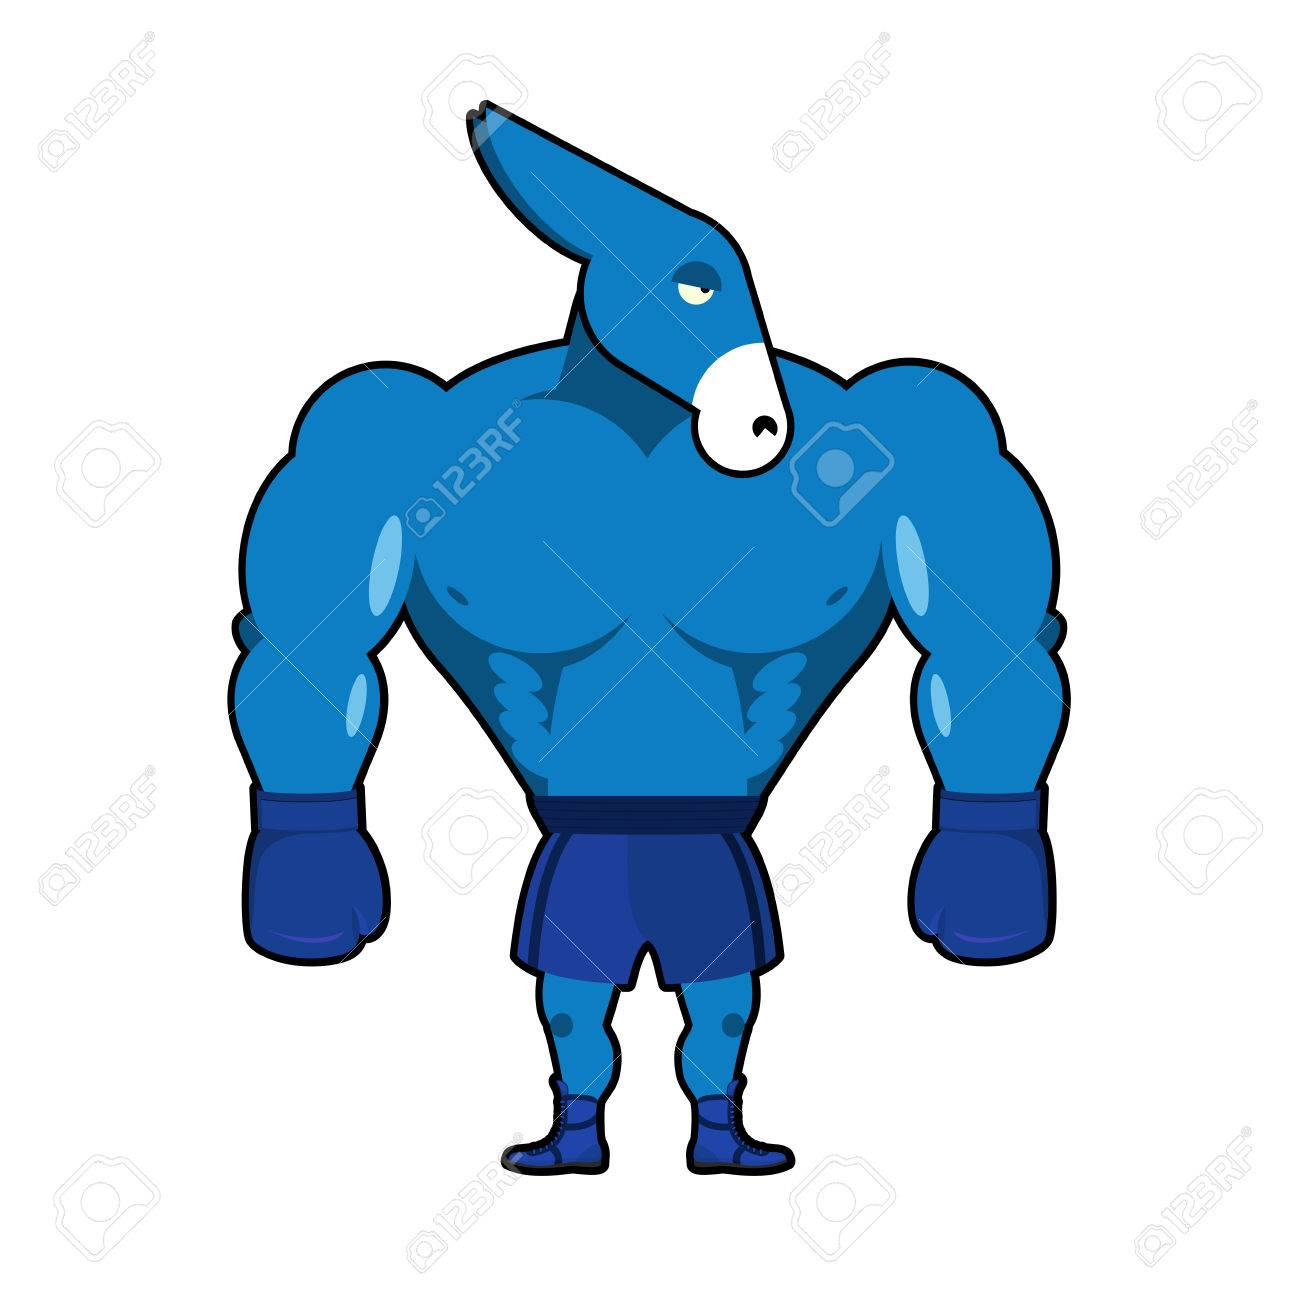 Democrat Donkey Boxer Strong Blue Animal Boxing Gloves Symbol